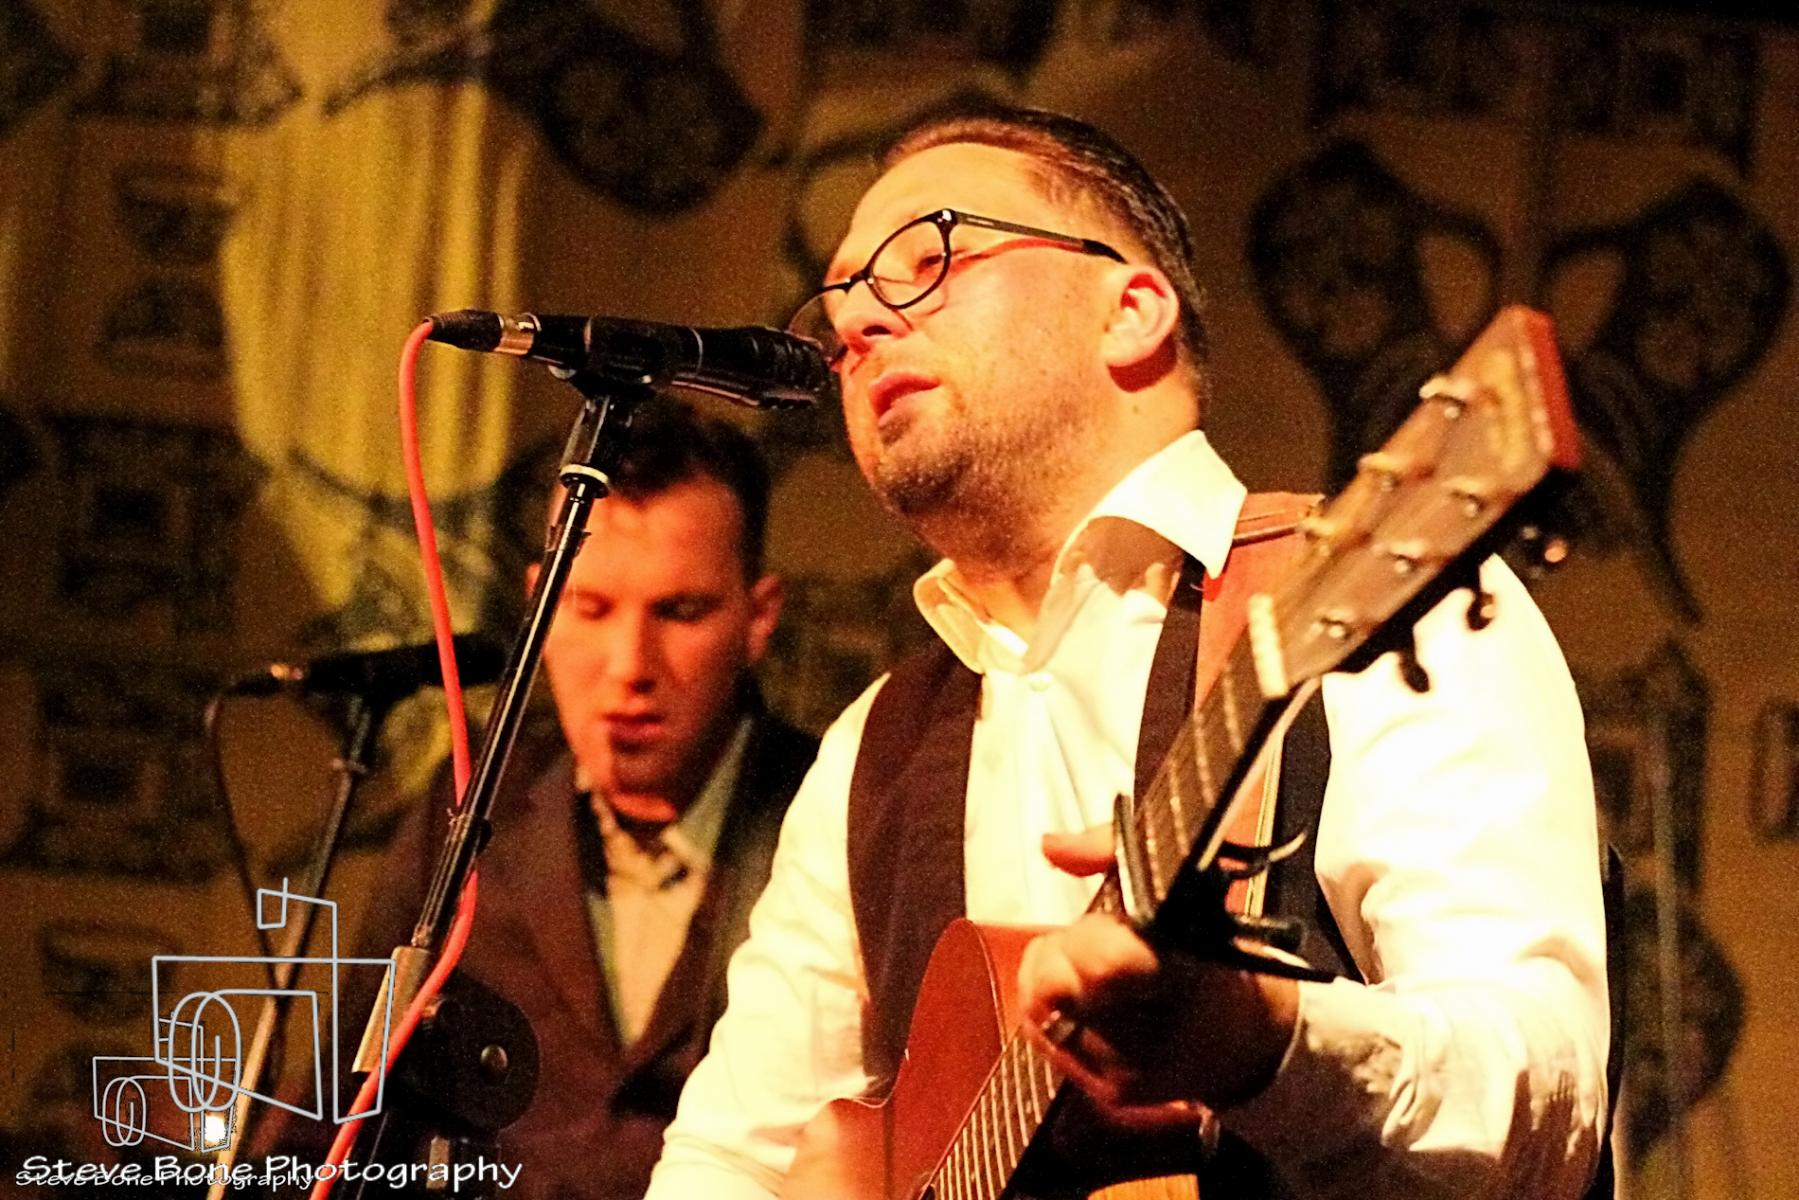 Rod Fisher + Dave Khan - The Three Bees - The Black Tie Event - Wine Cellar - 23rd May 2013